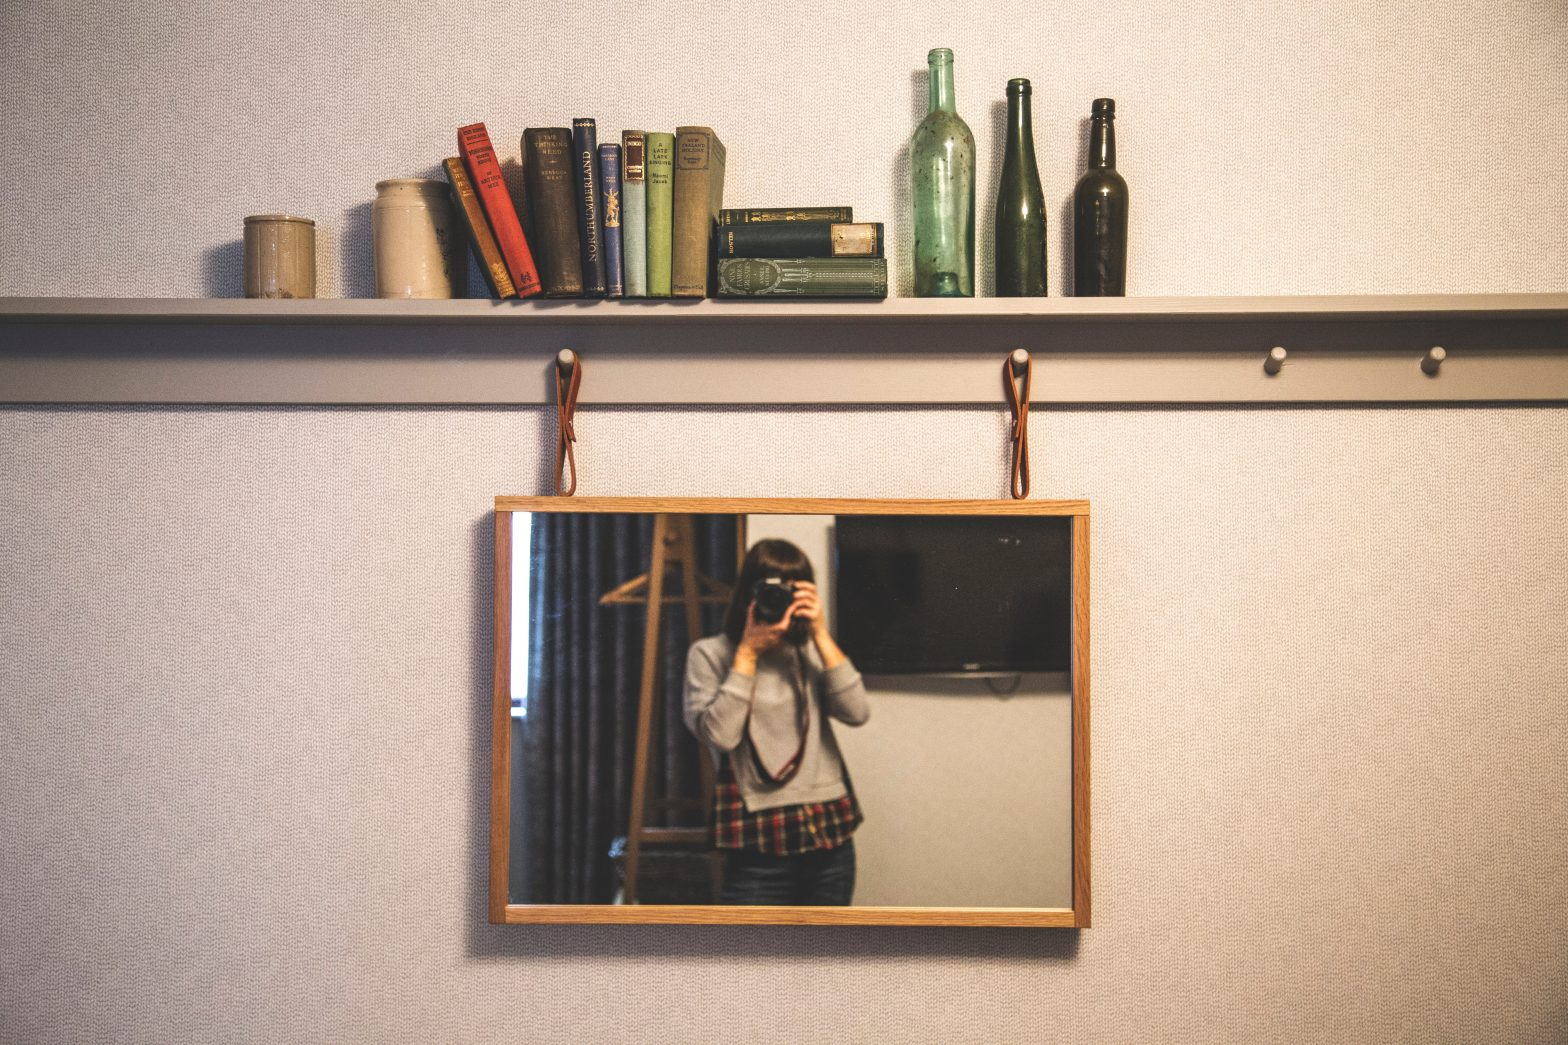 Photographer pictured in a mirror